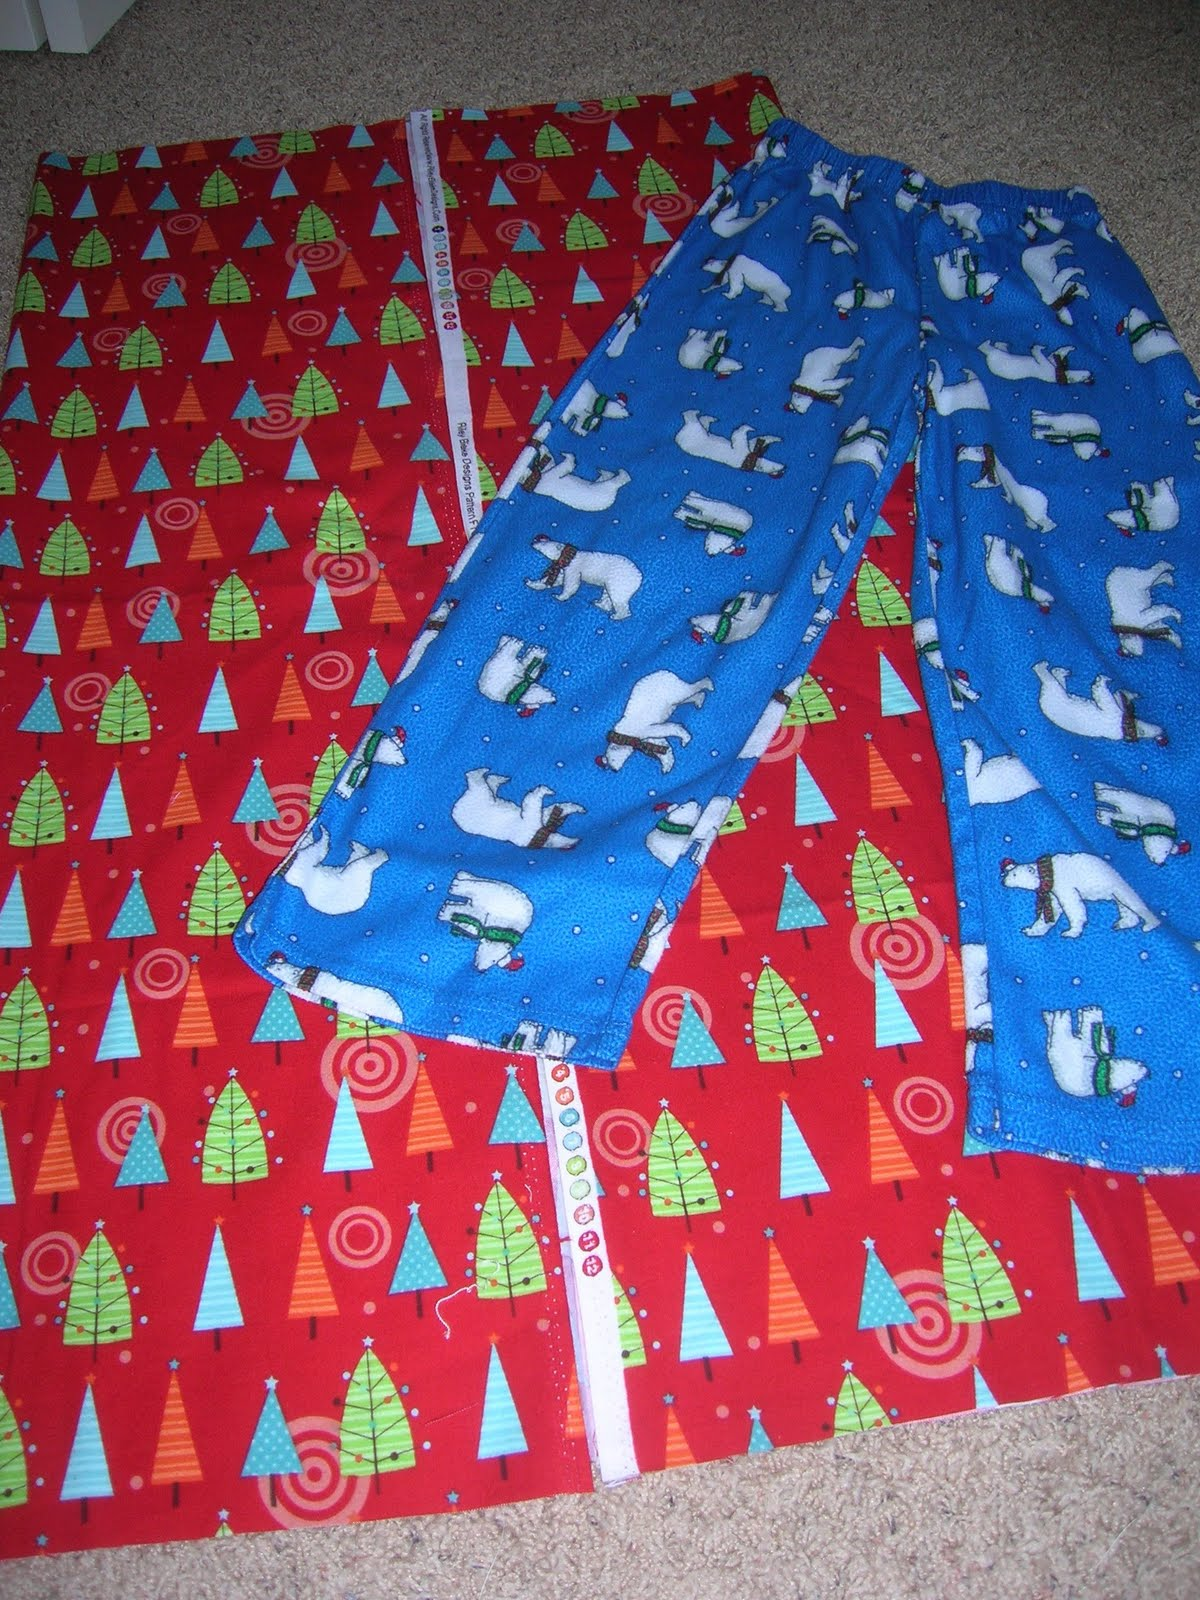 Fireside Plaid Fleece Matching Family Pajamas. These all-fleece pajamas are perfect for gathering in front of a warm fire on cold winter nights. Rich red top features deer applique that matches the pants; bottoms are made in a festive red plaid print great for the holidays and beyond.